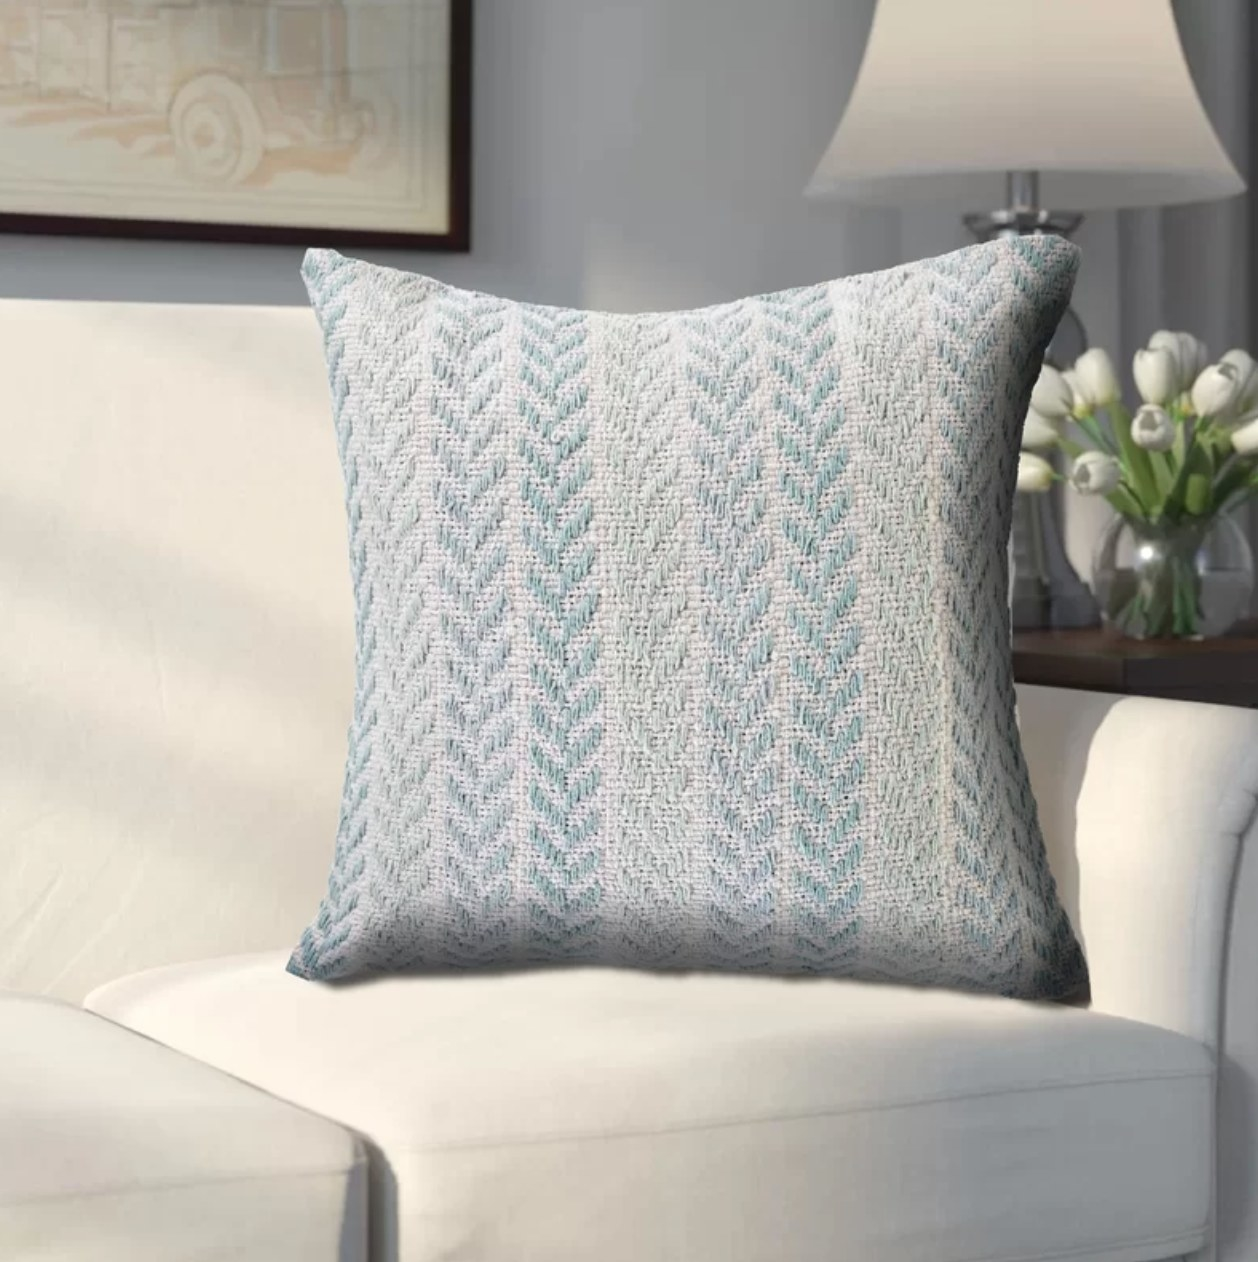 The square pillow in turquoise on a white couch